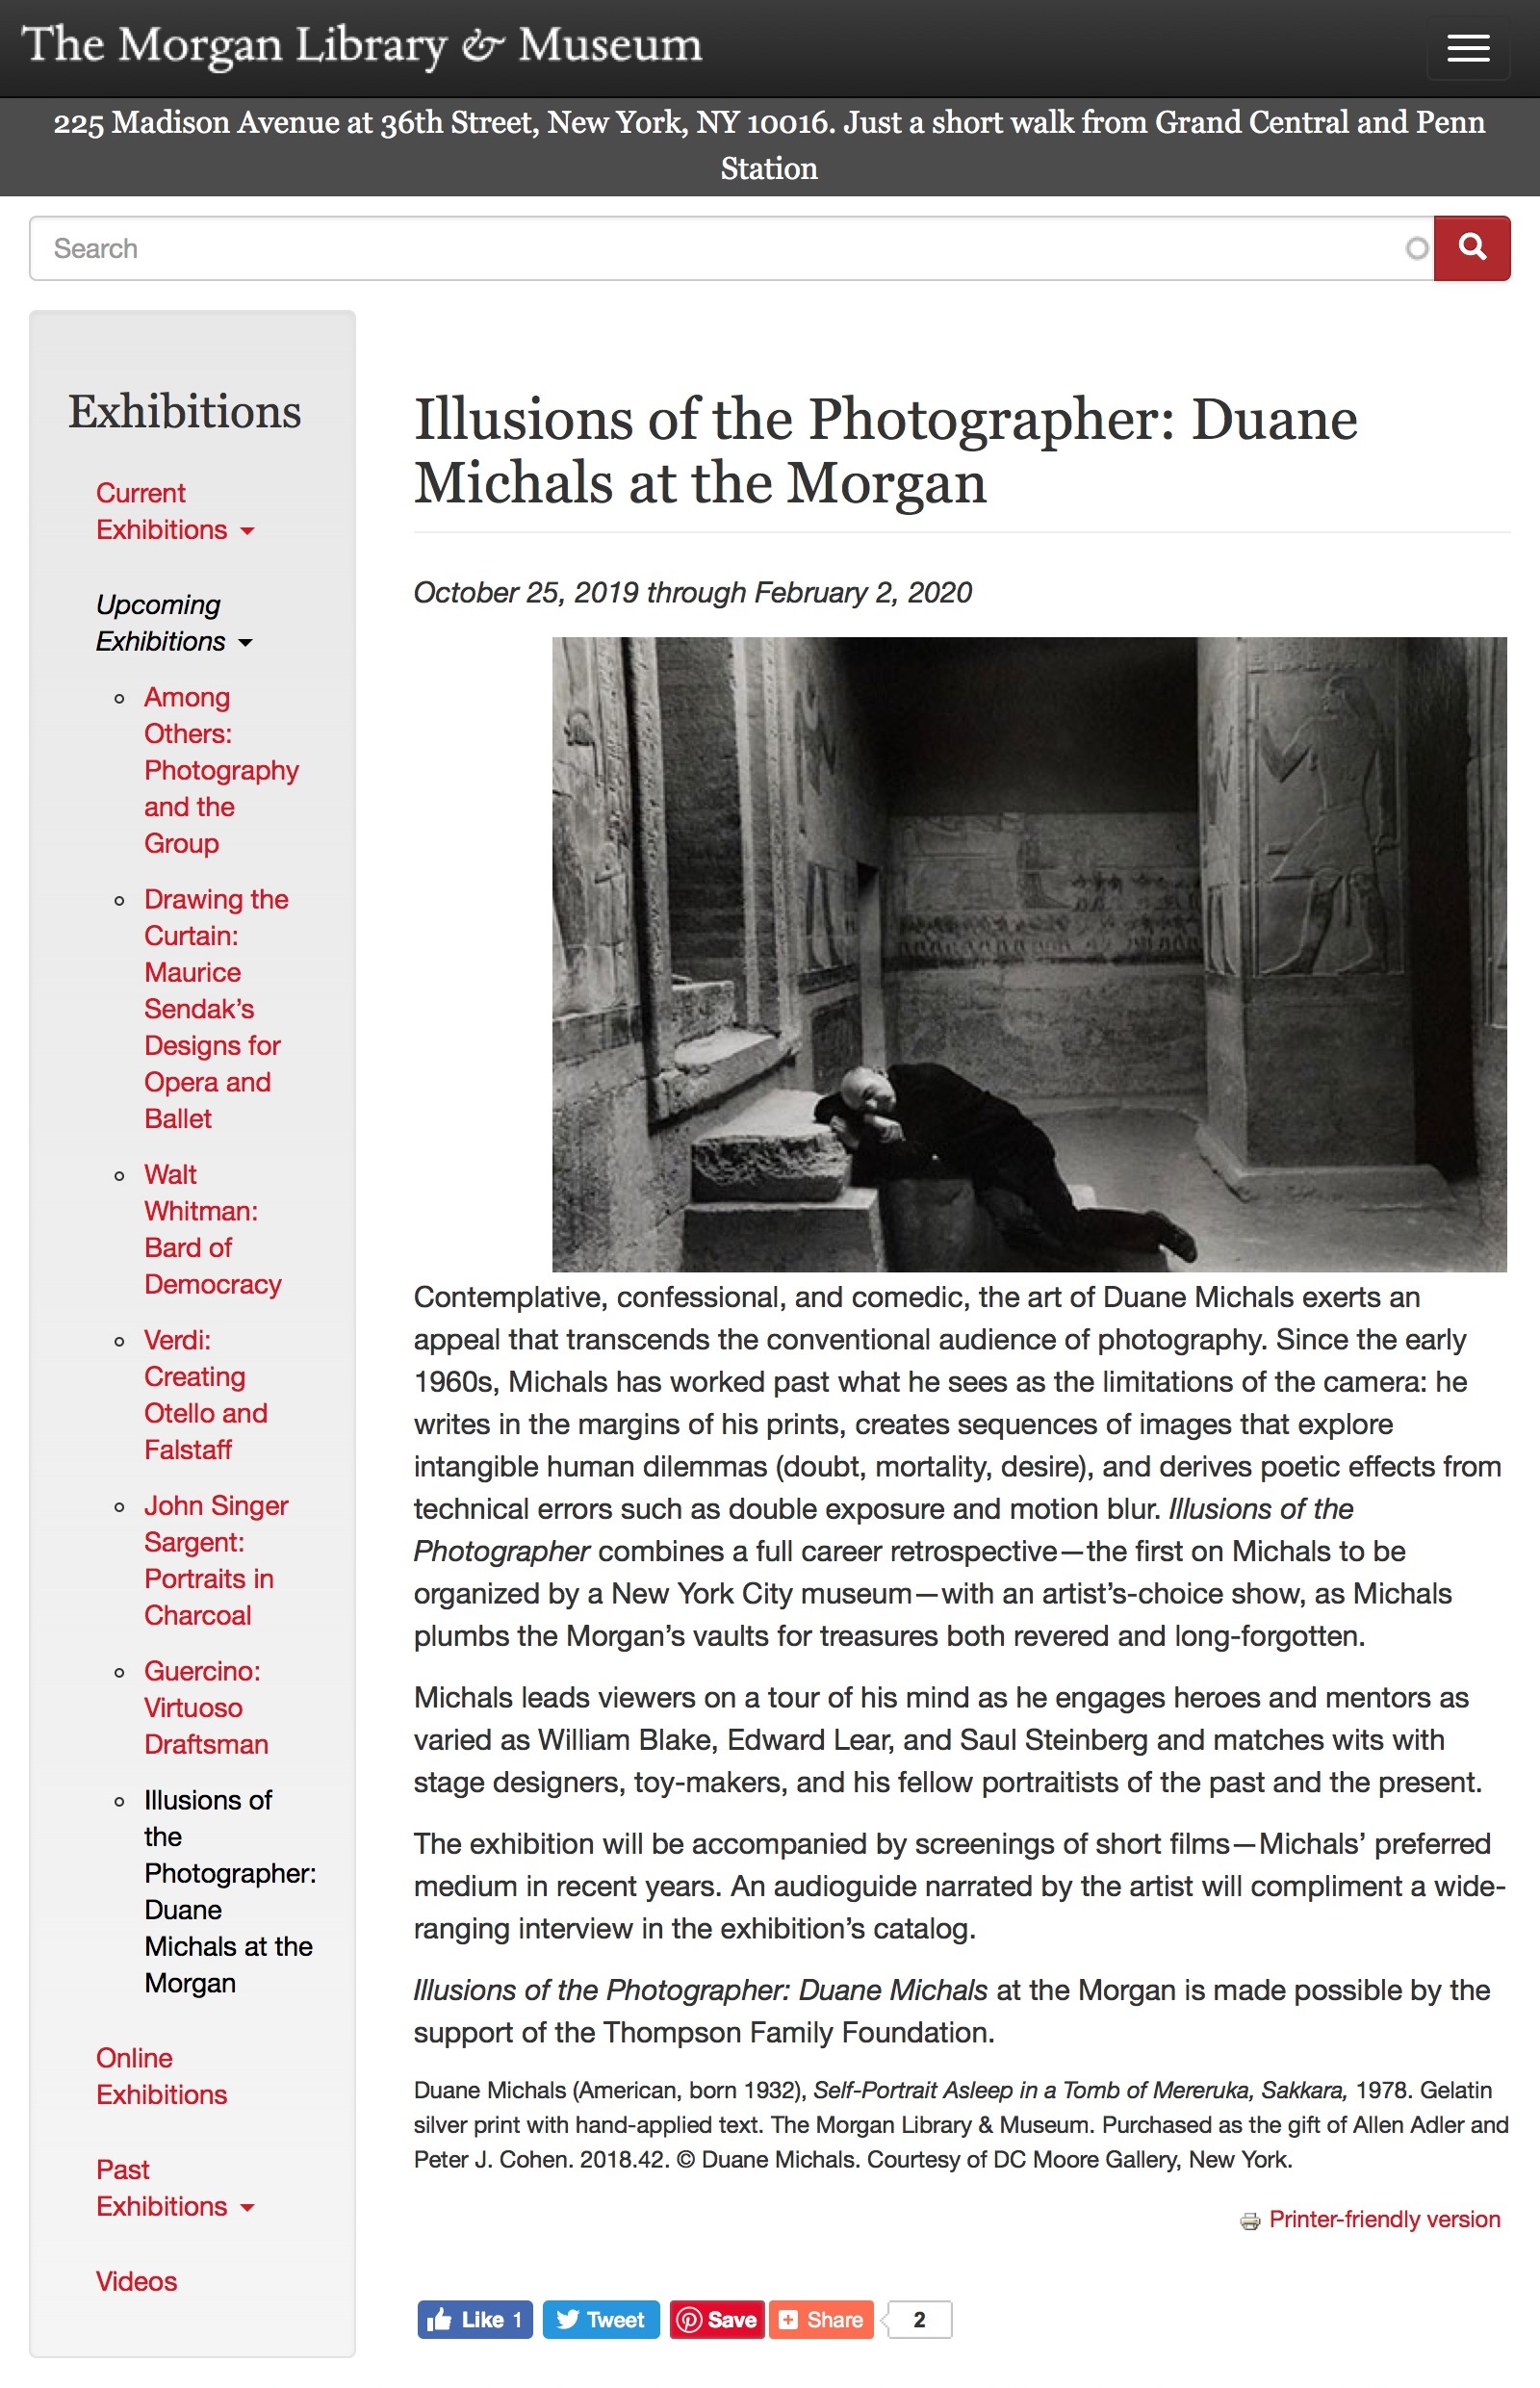 Illusions of the Photographer- Duane Michals at the Morgan | The Morgan Library & Museum ().jpg